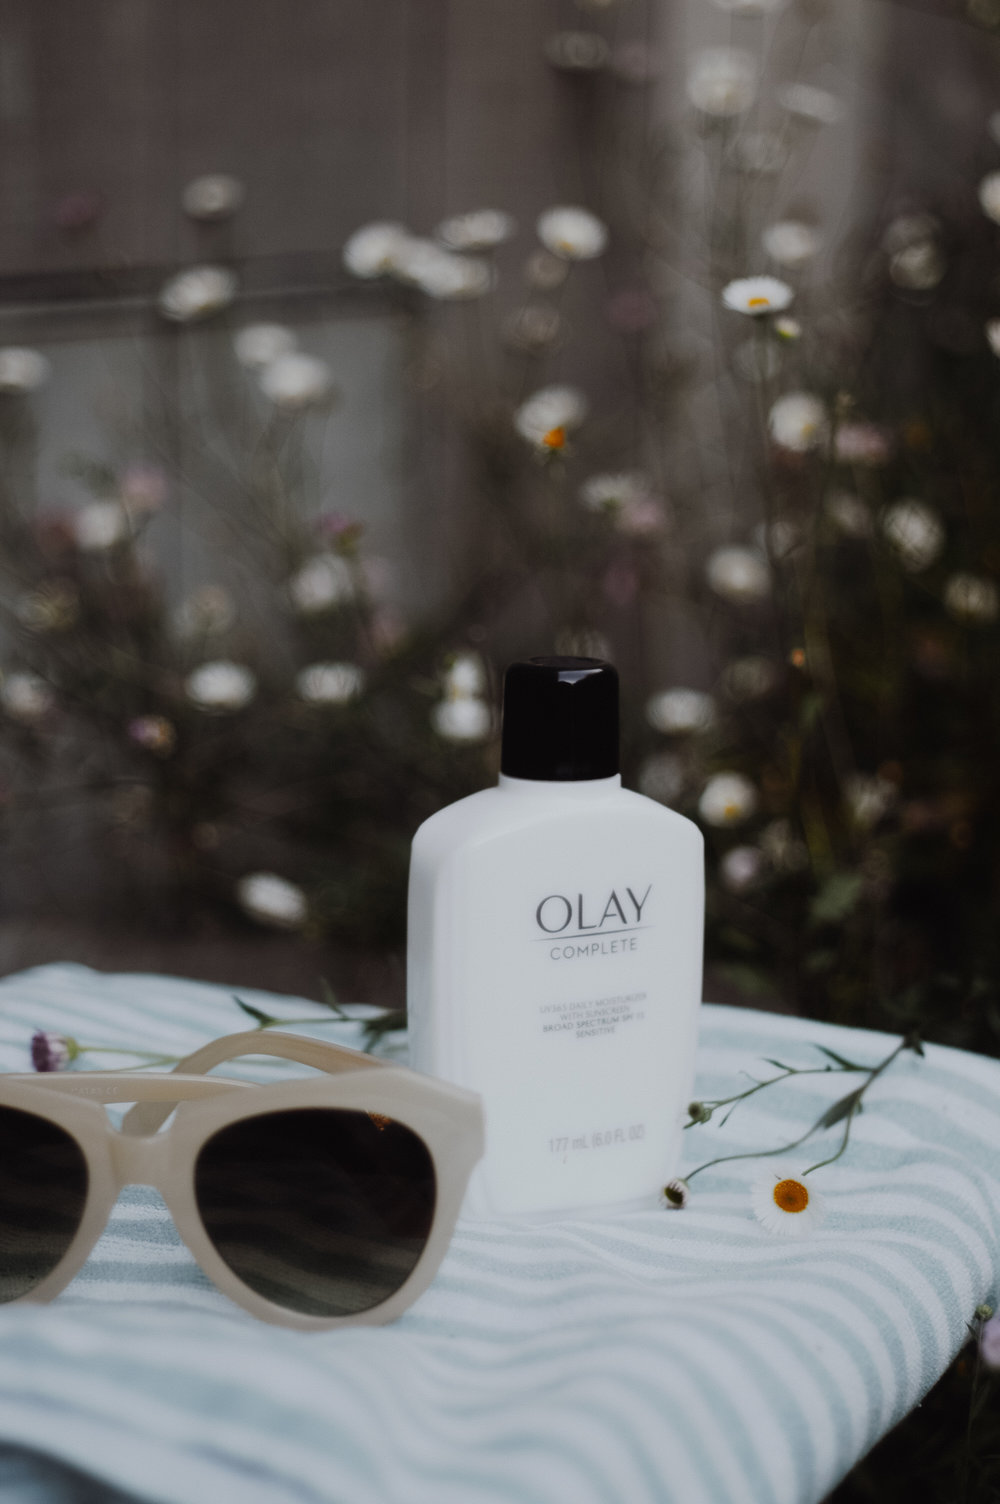 Olay SPF moisturizer blogger review